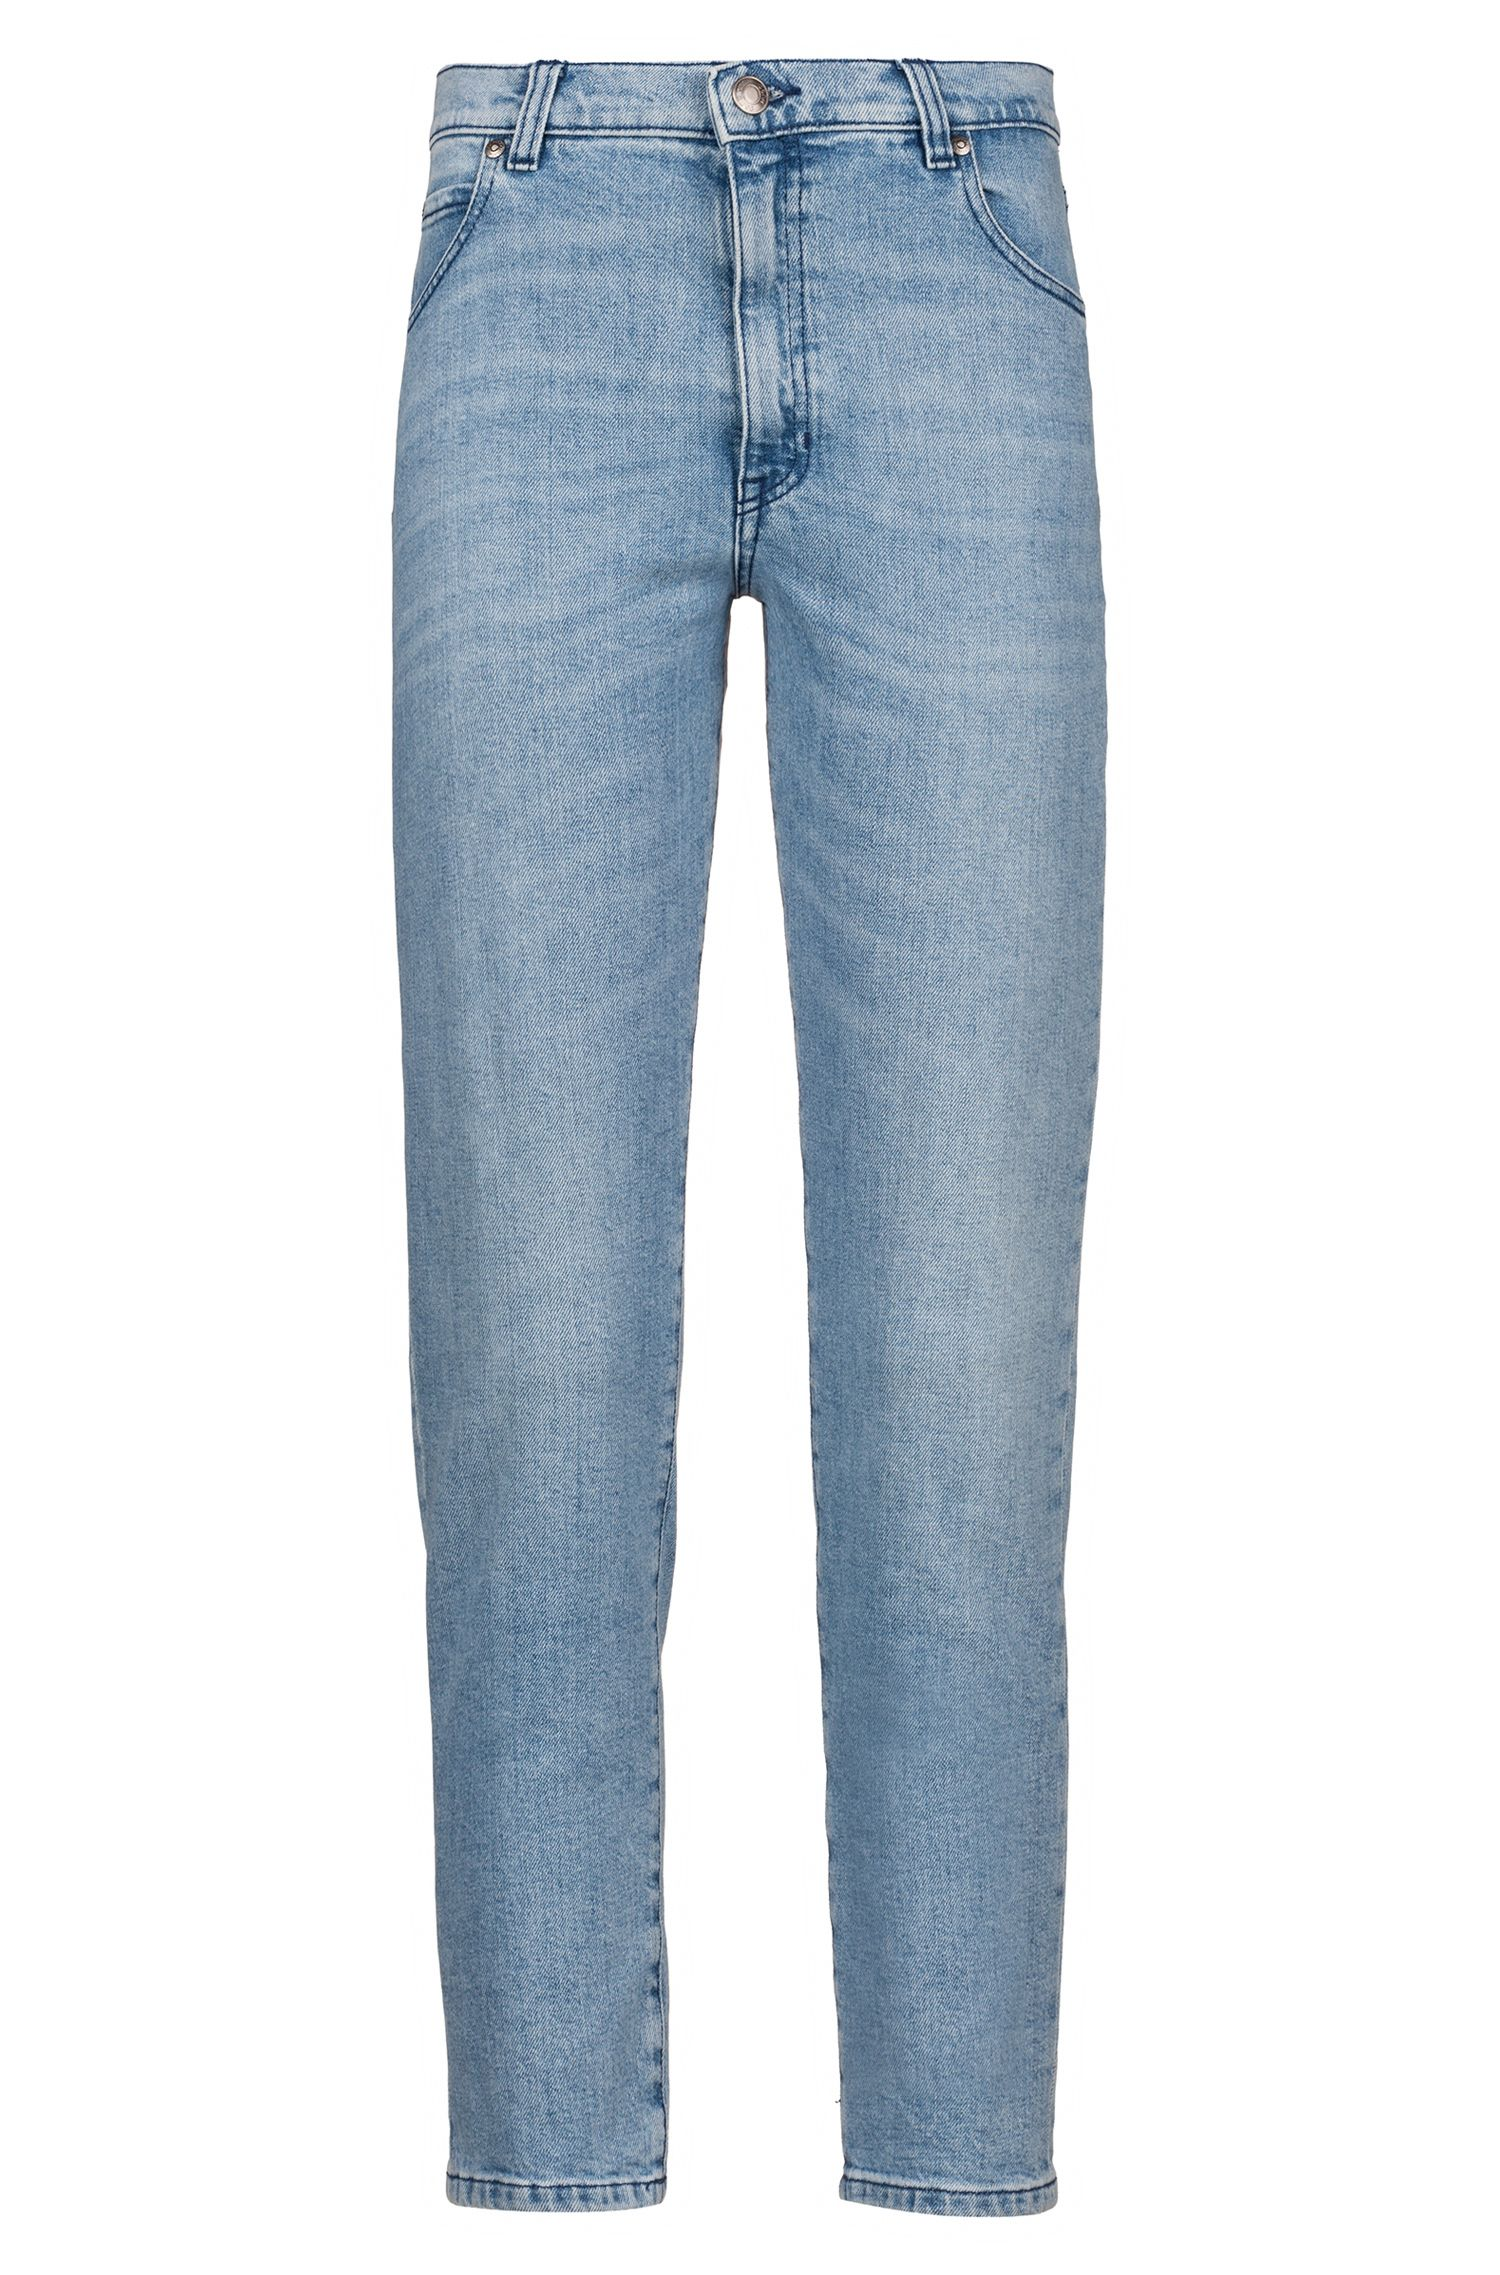 Slim-Fit Jeans aus italienischem Stretch-Denim in Cropped-Länge, Blau